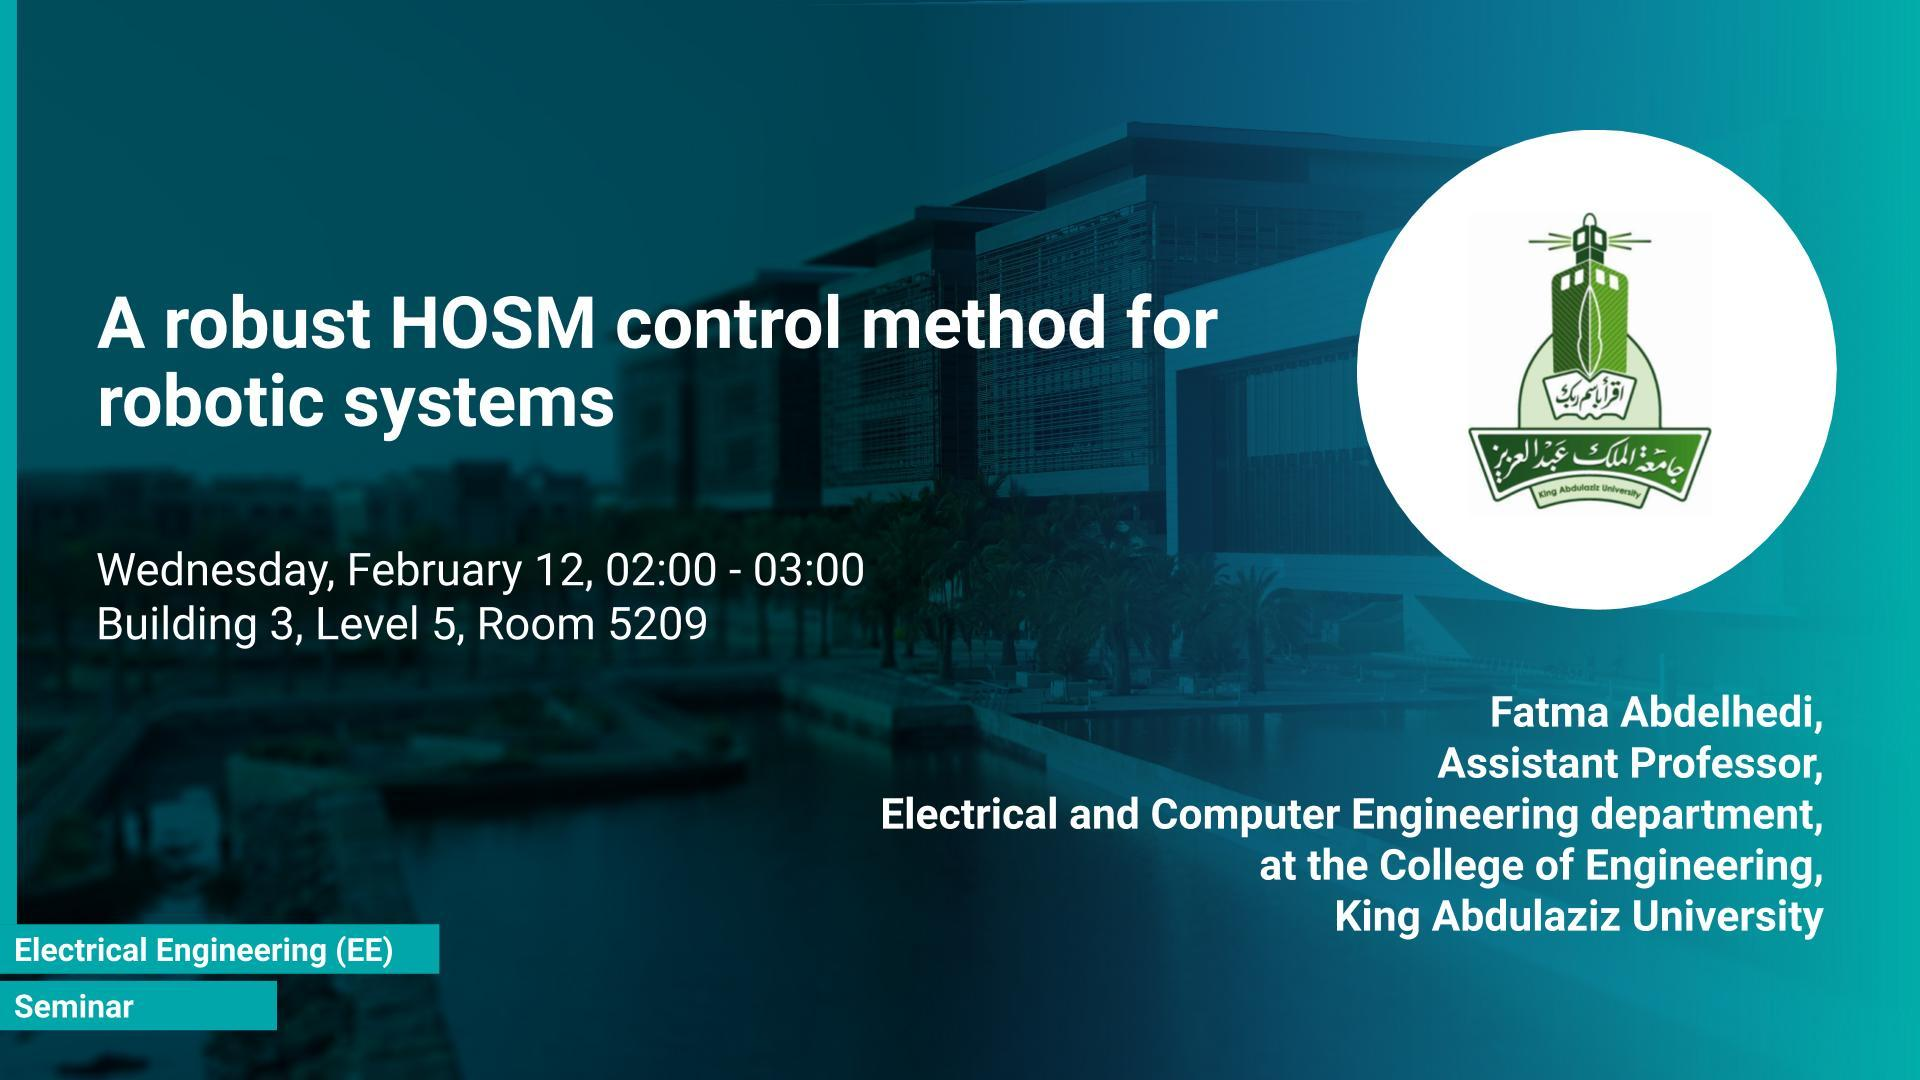 KAUST CEMSE EE Seminar Fatma Abdelhedi robust HOSM control method for robotic systems